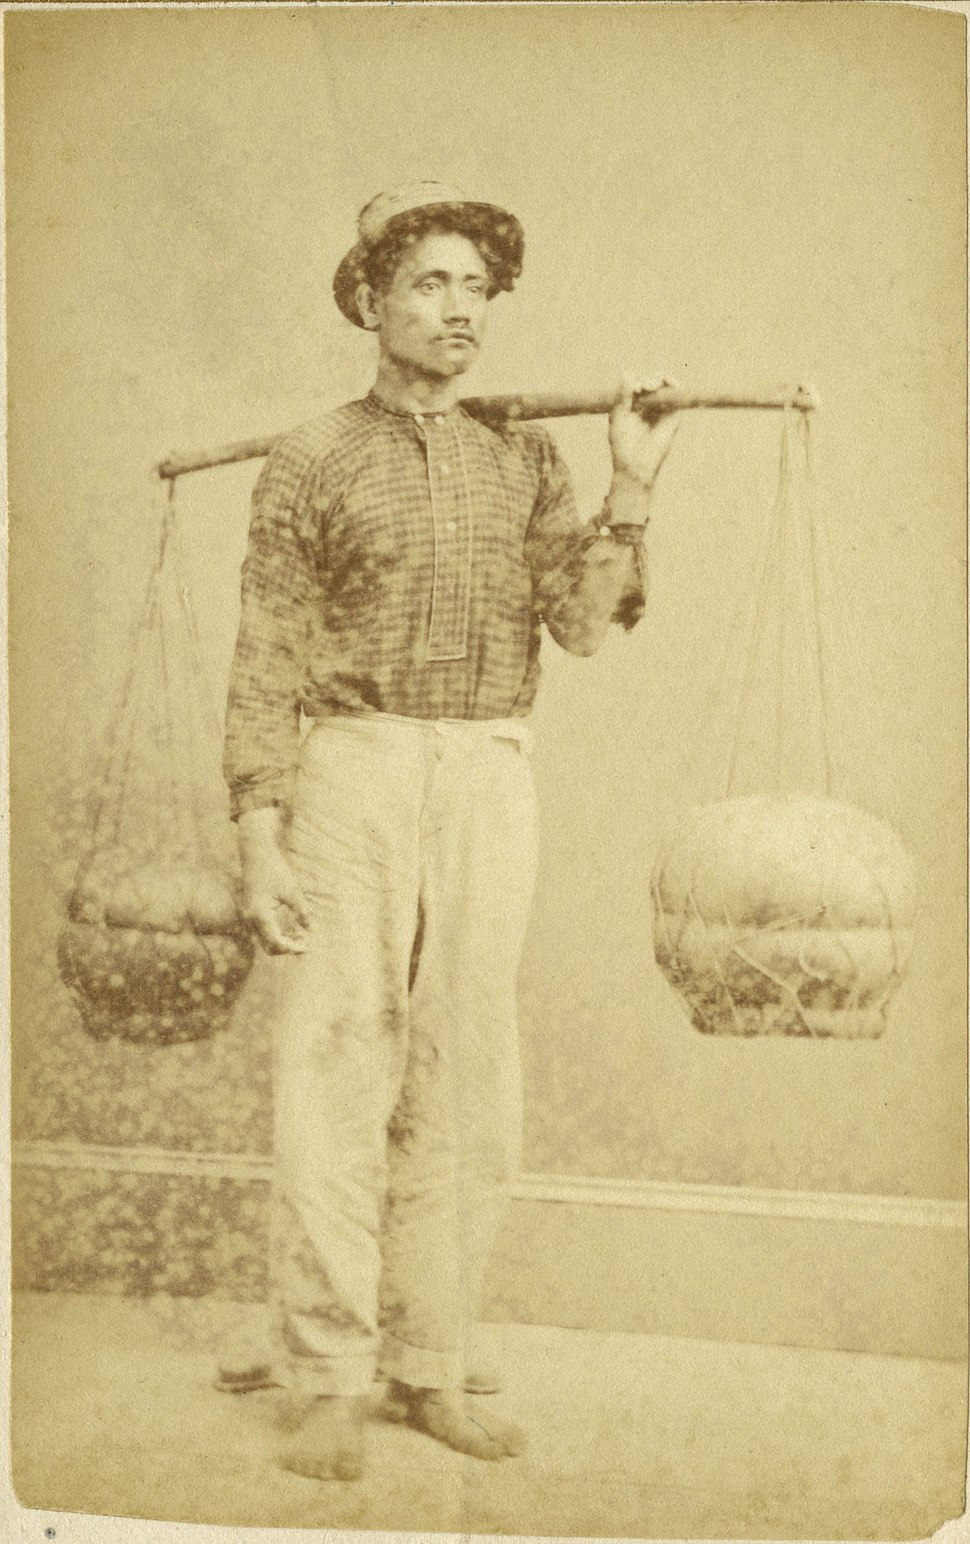 Hawaiian poi dealer, photograph by Menzies Dickson